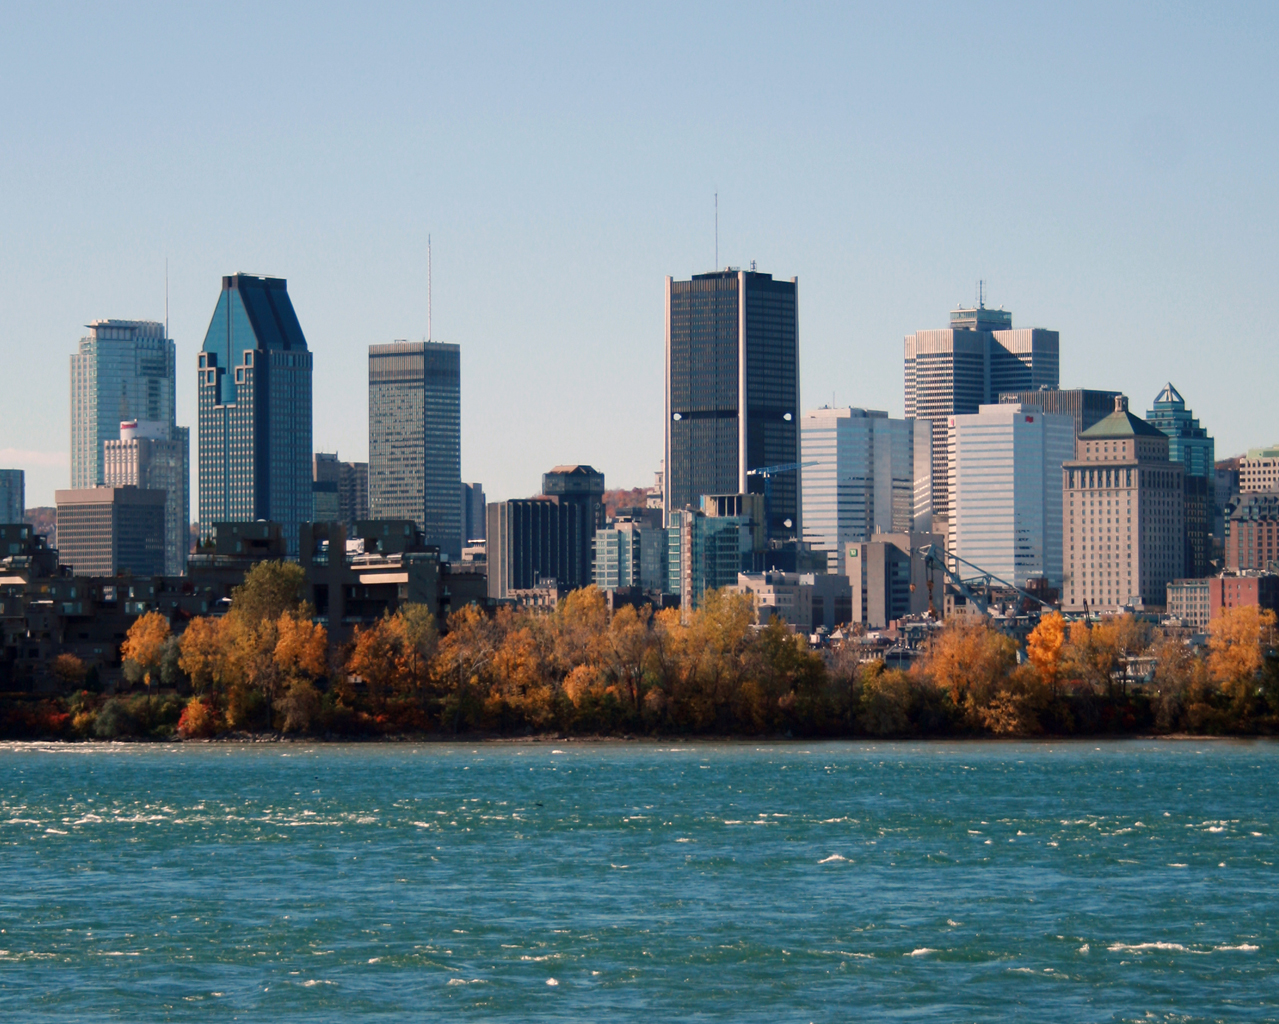 Wallpaper: Montreal